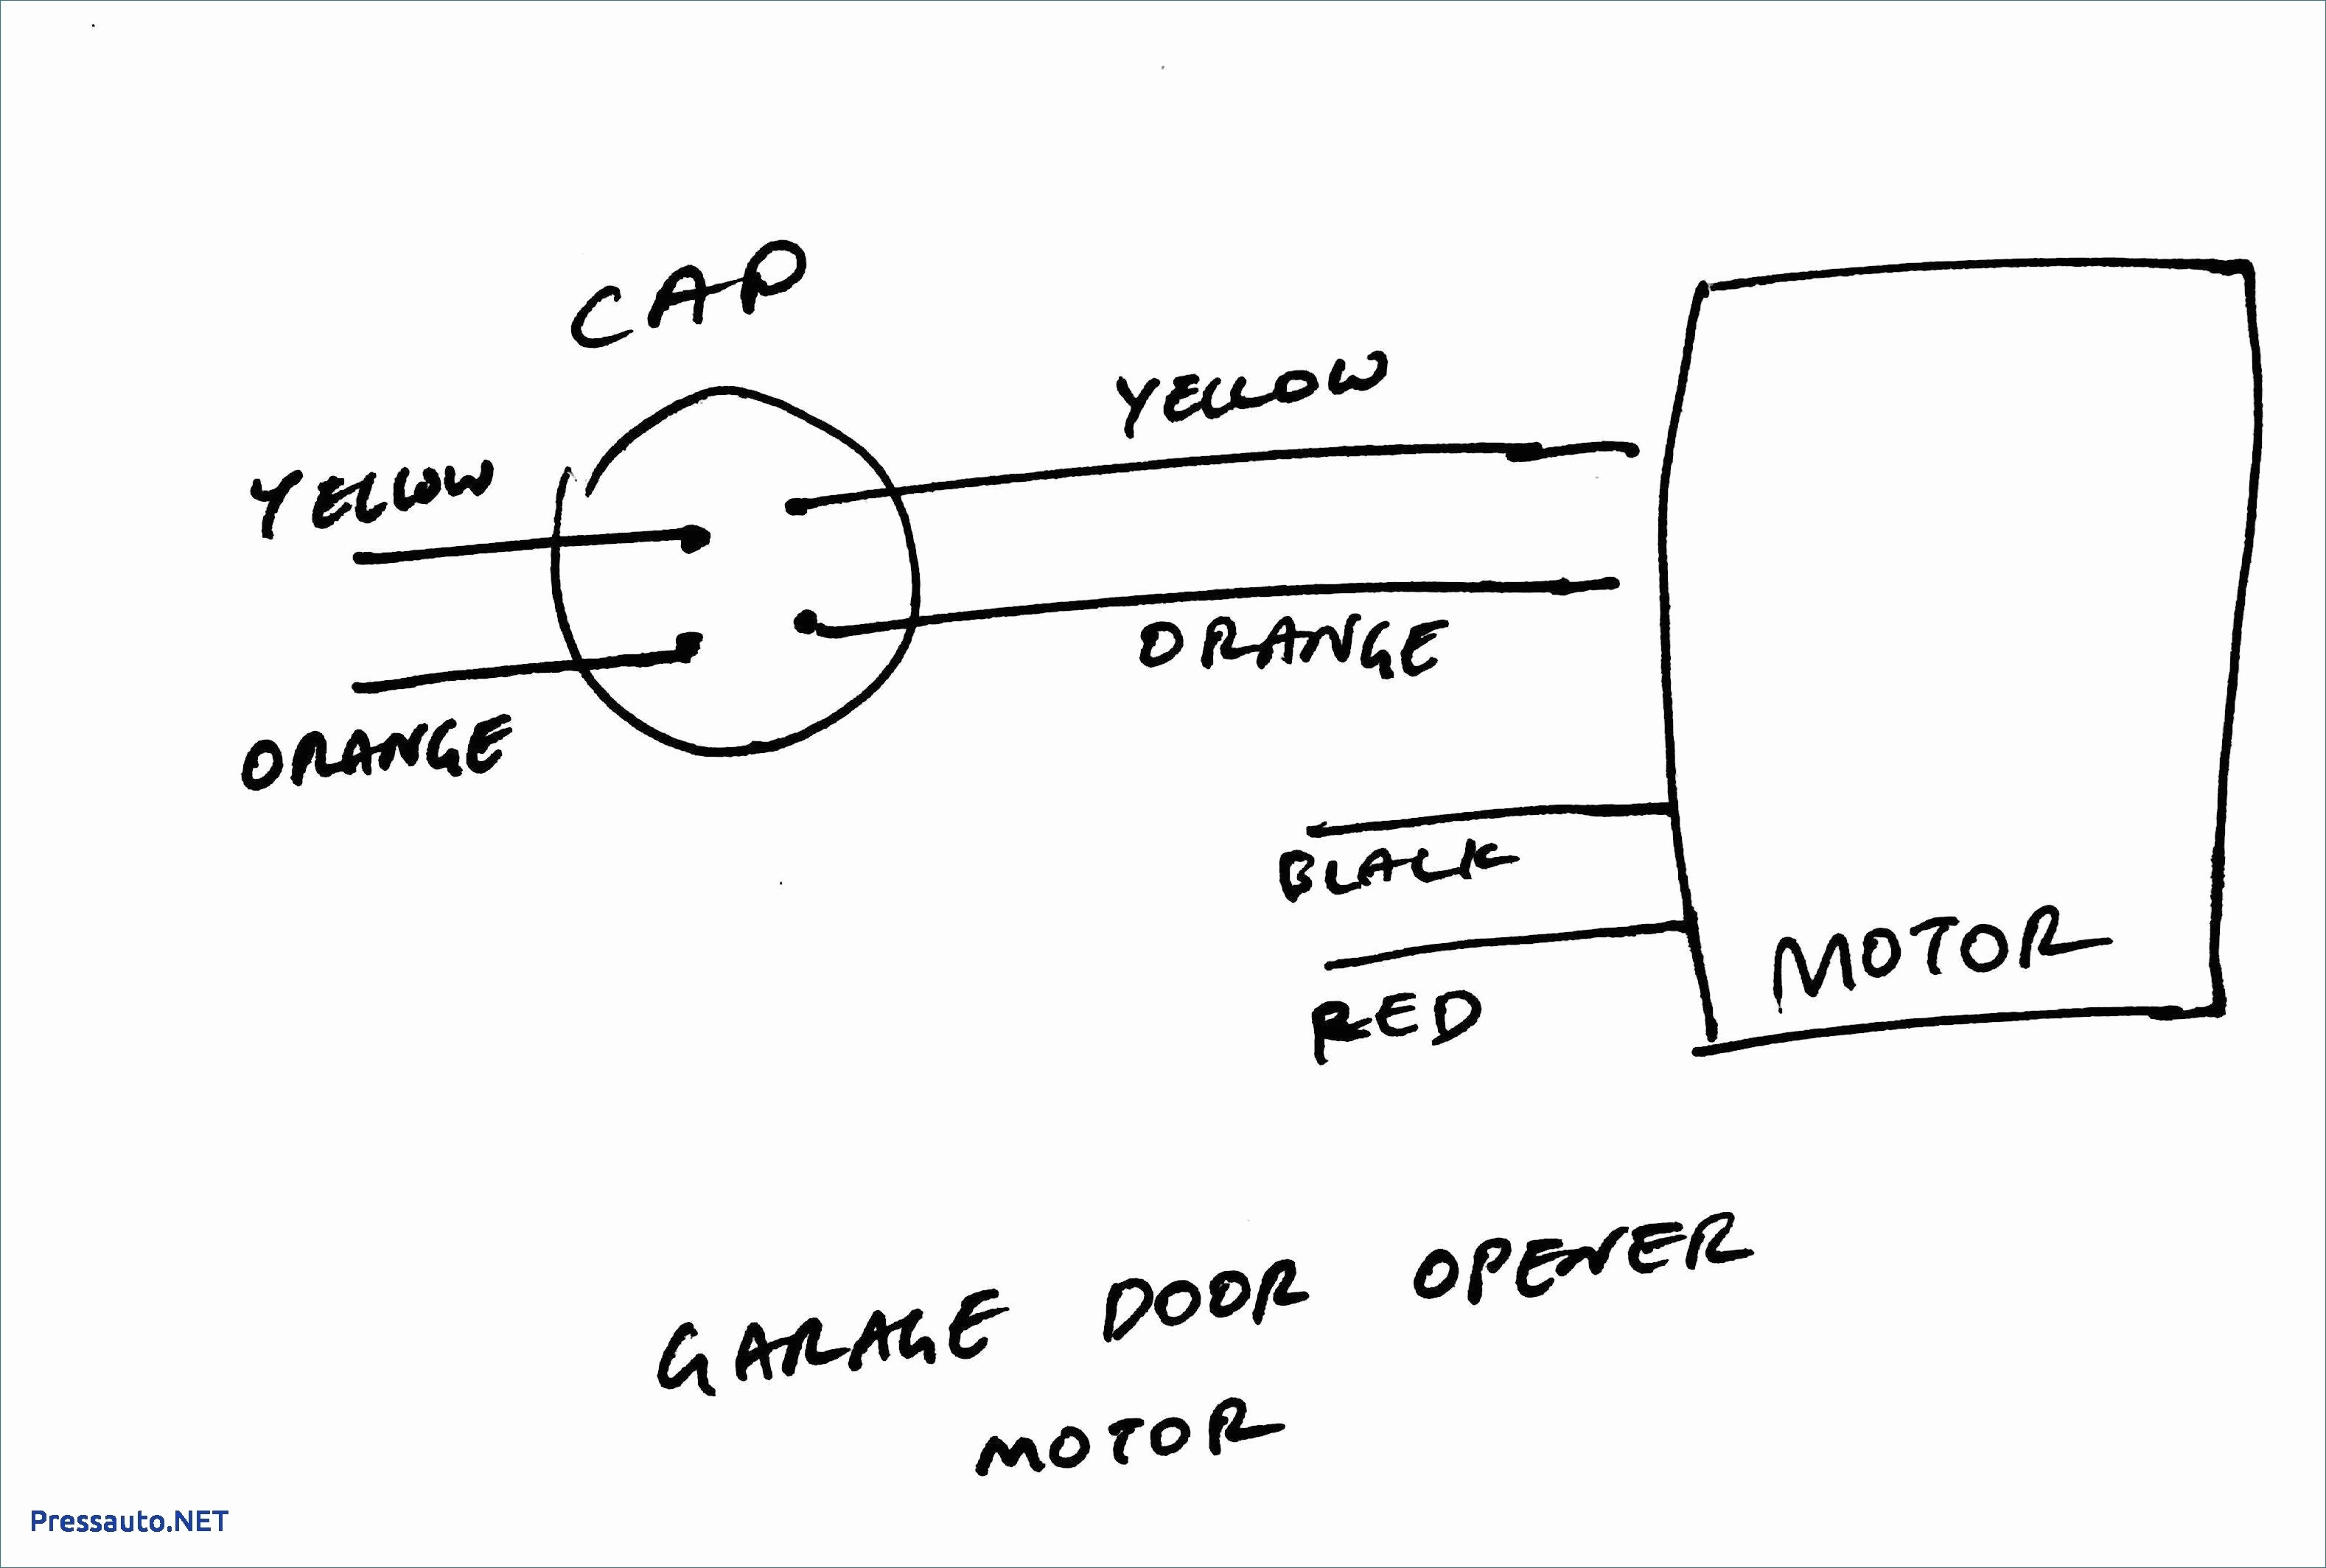 Ge Dc Motor Wiring Diagram Simple Electrical Wiring Diagram 230V Single  Phase Wiring Diagram Ac Motor Wiring Diagram